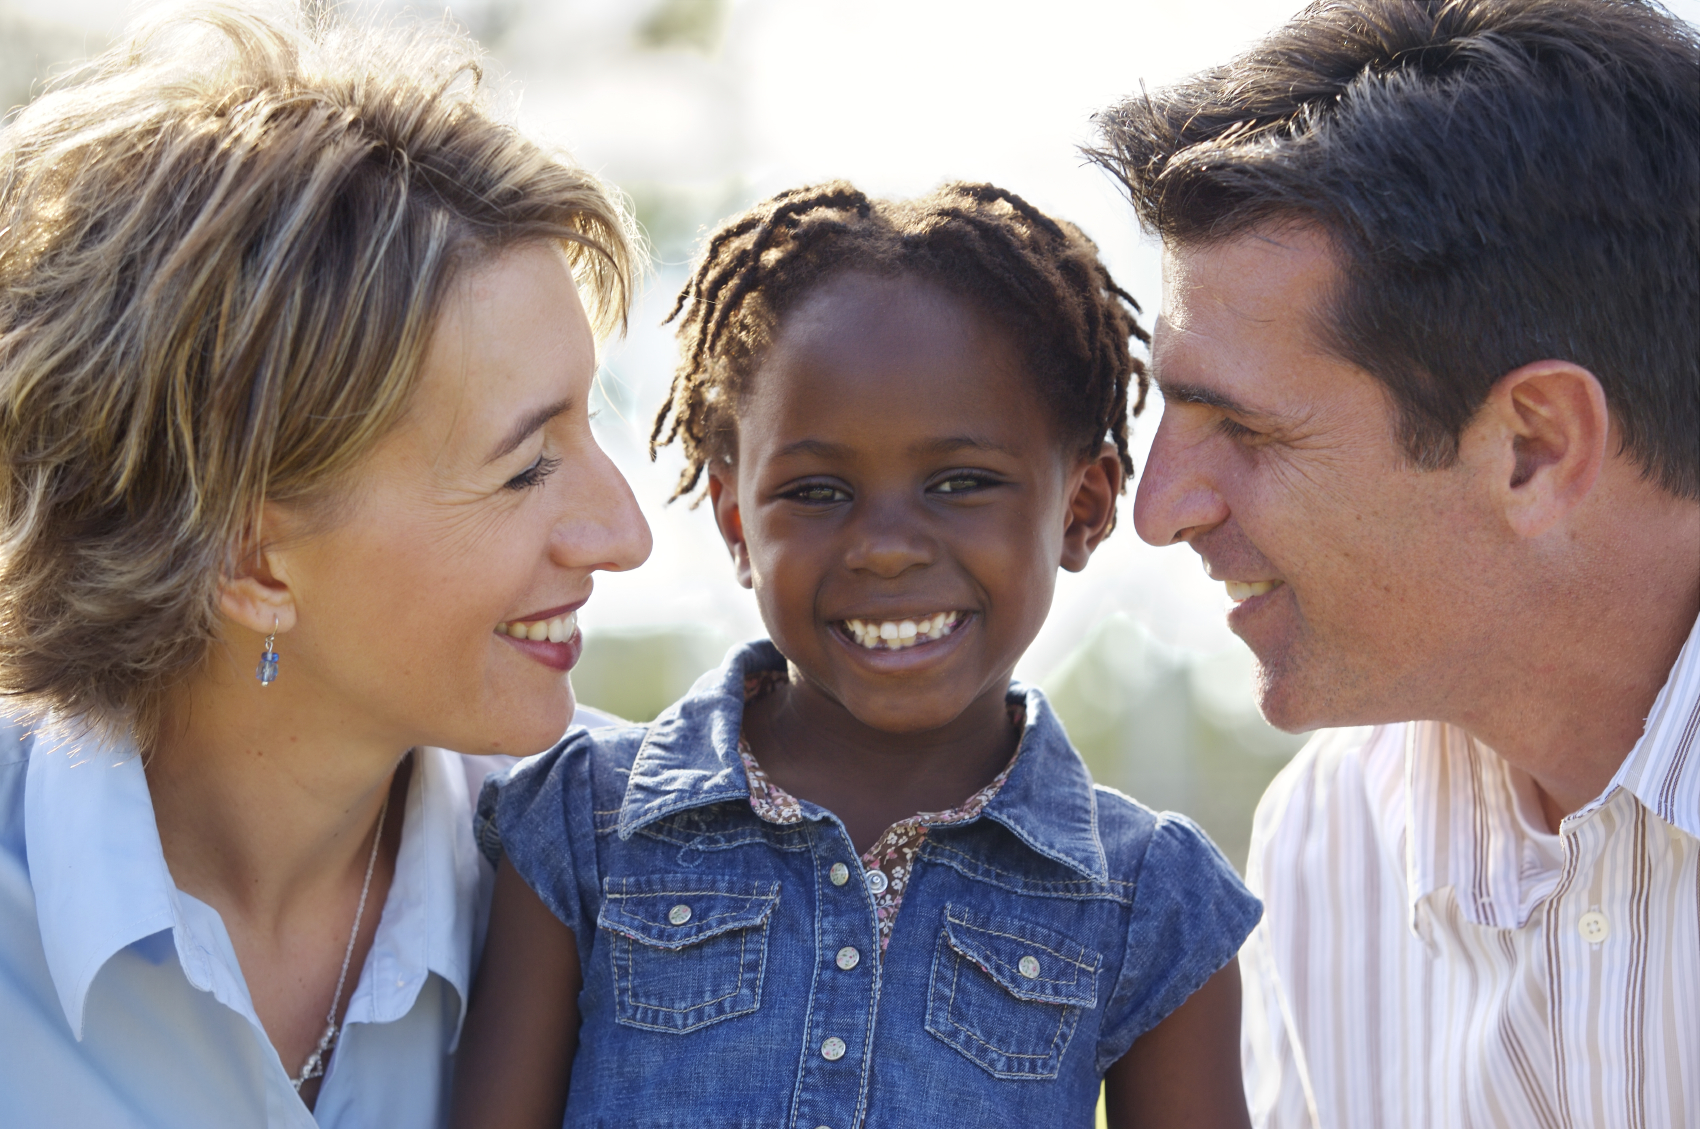 adopting a child from another countryadopting a child from another country